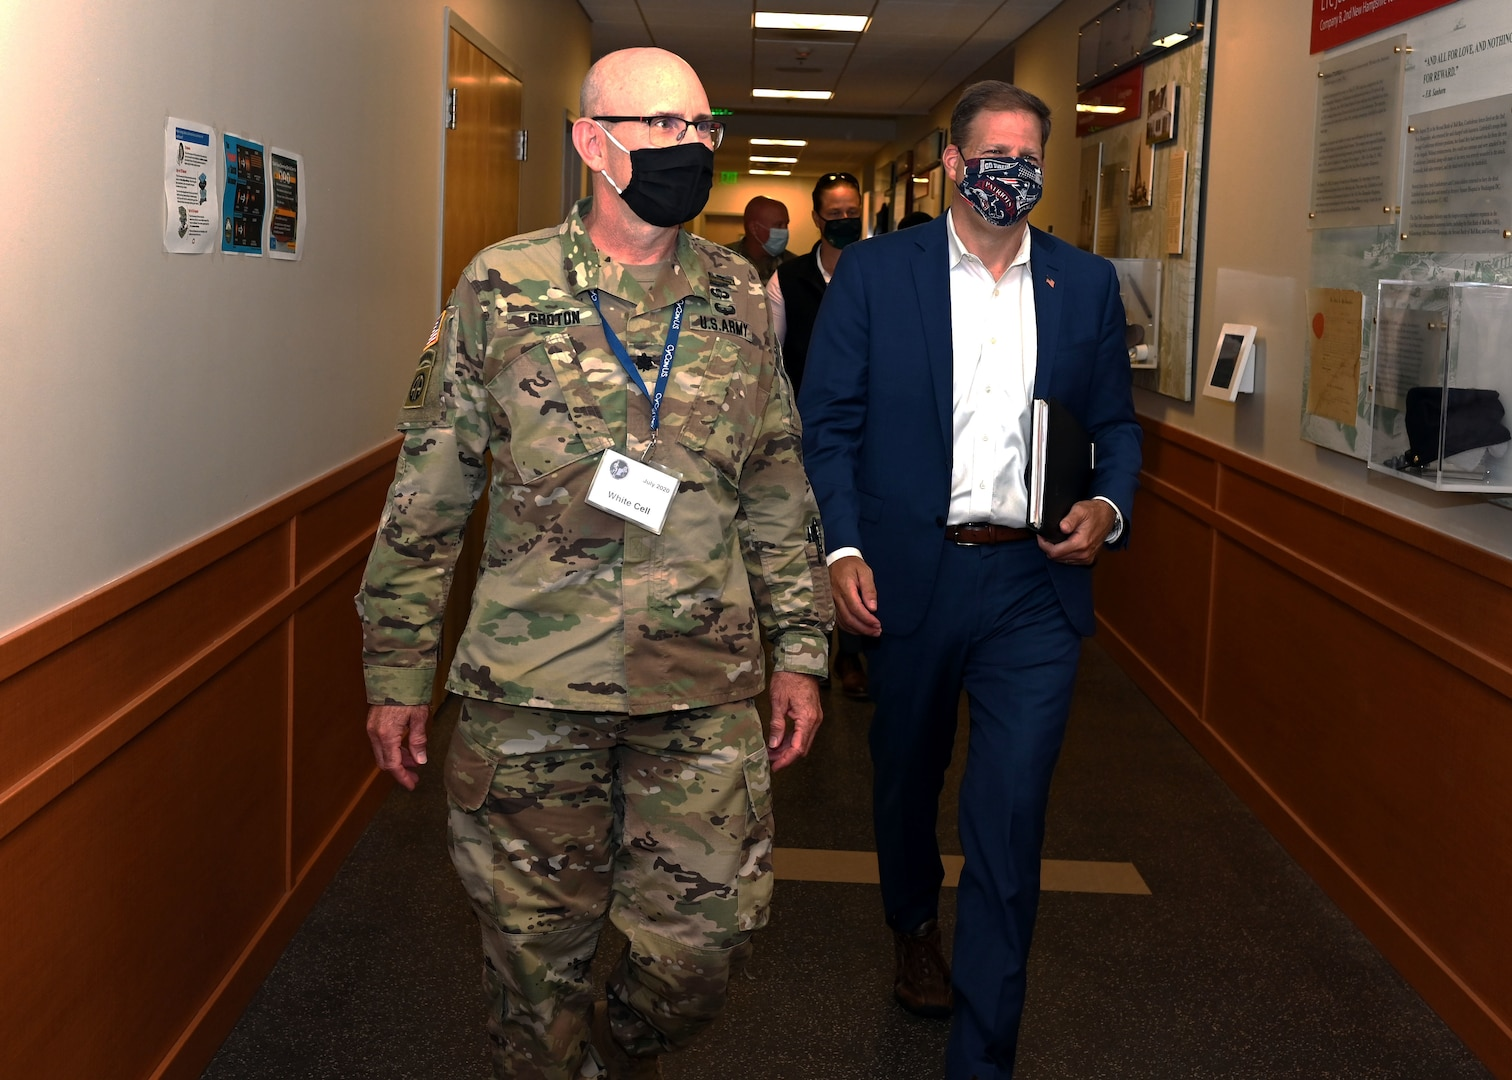 New Hampshire National Guard Lt. Col. Woody Groton, exercise director of Cyber Yankee 2020, leads New Hampshire Gov. Chris Sununu on a tour of the event on July 31, 2020, at the Edward Cross Training Center in Pembroke, N.H. The two-week regional exercise enhanced the Guard's ability to respond to cyberattacks against state government and critical infrastructure.